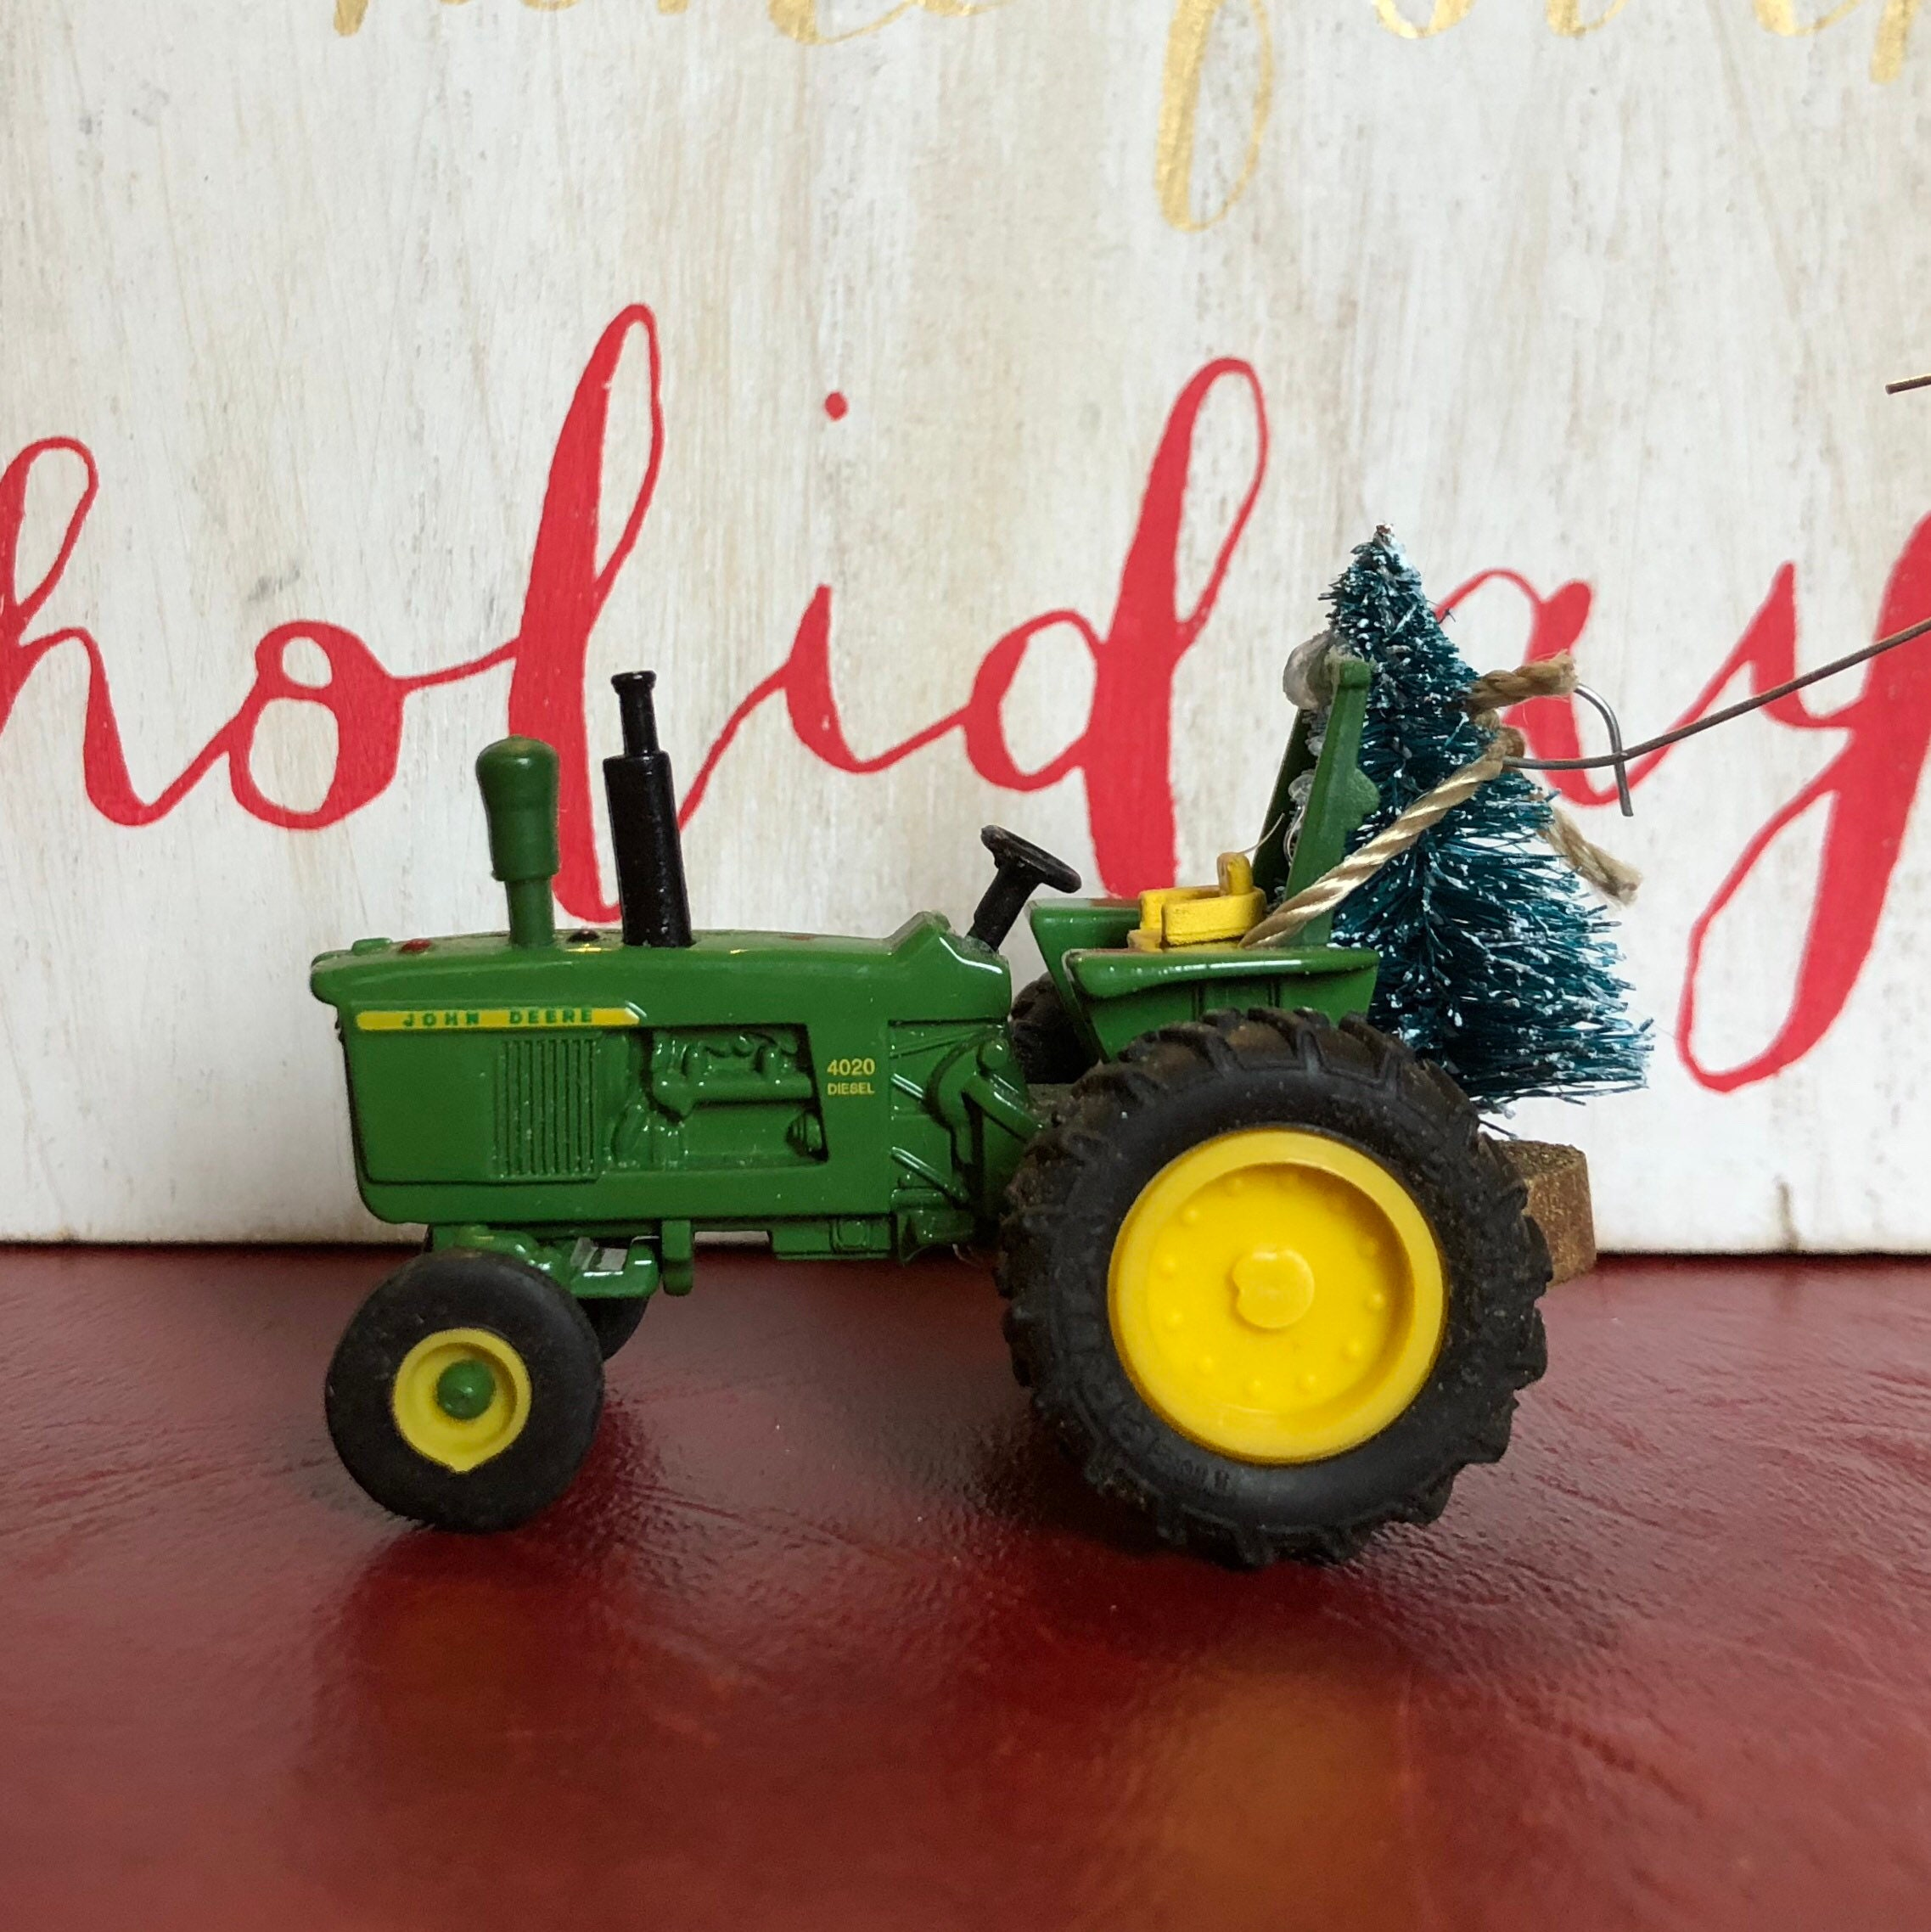 John Deere Tractor Carrying Christmas Tree Ornament   Etsy